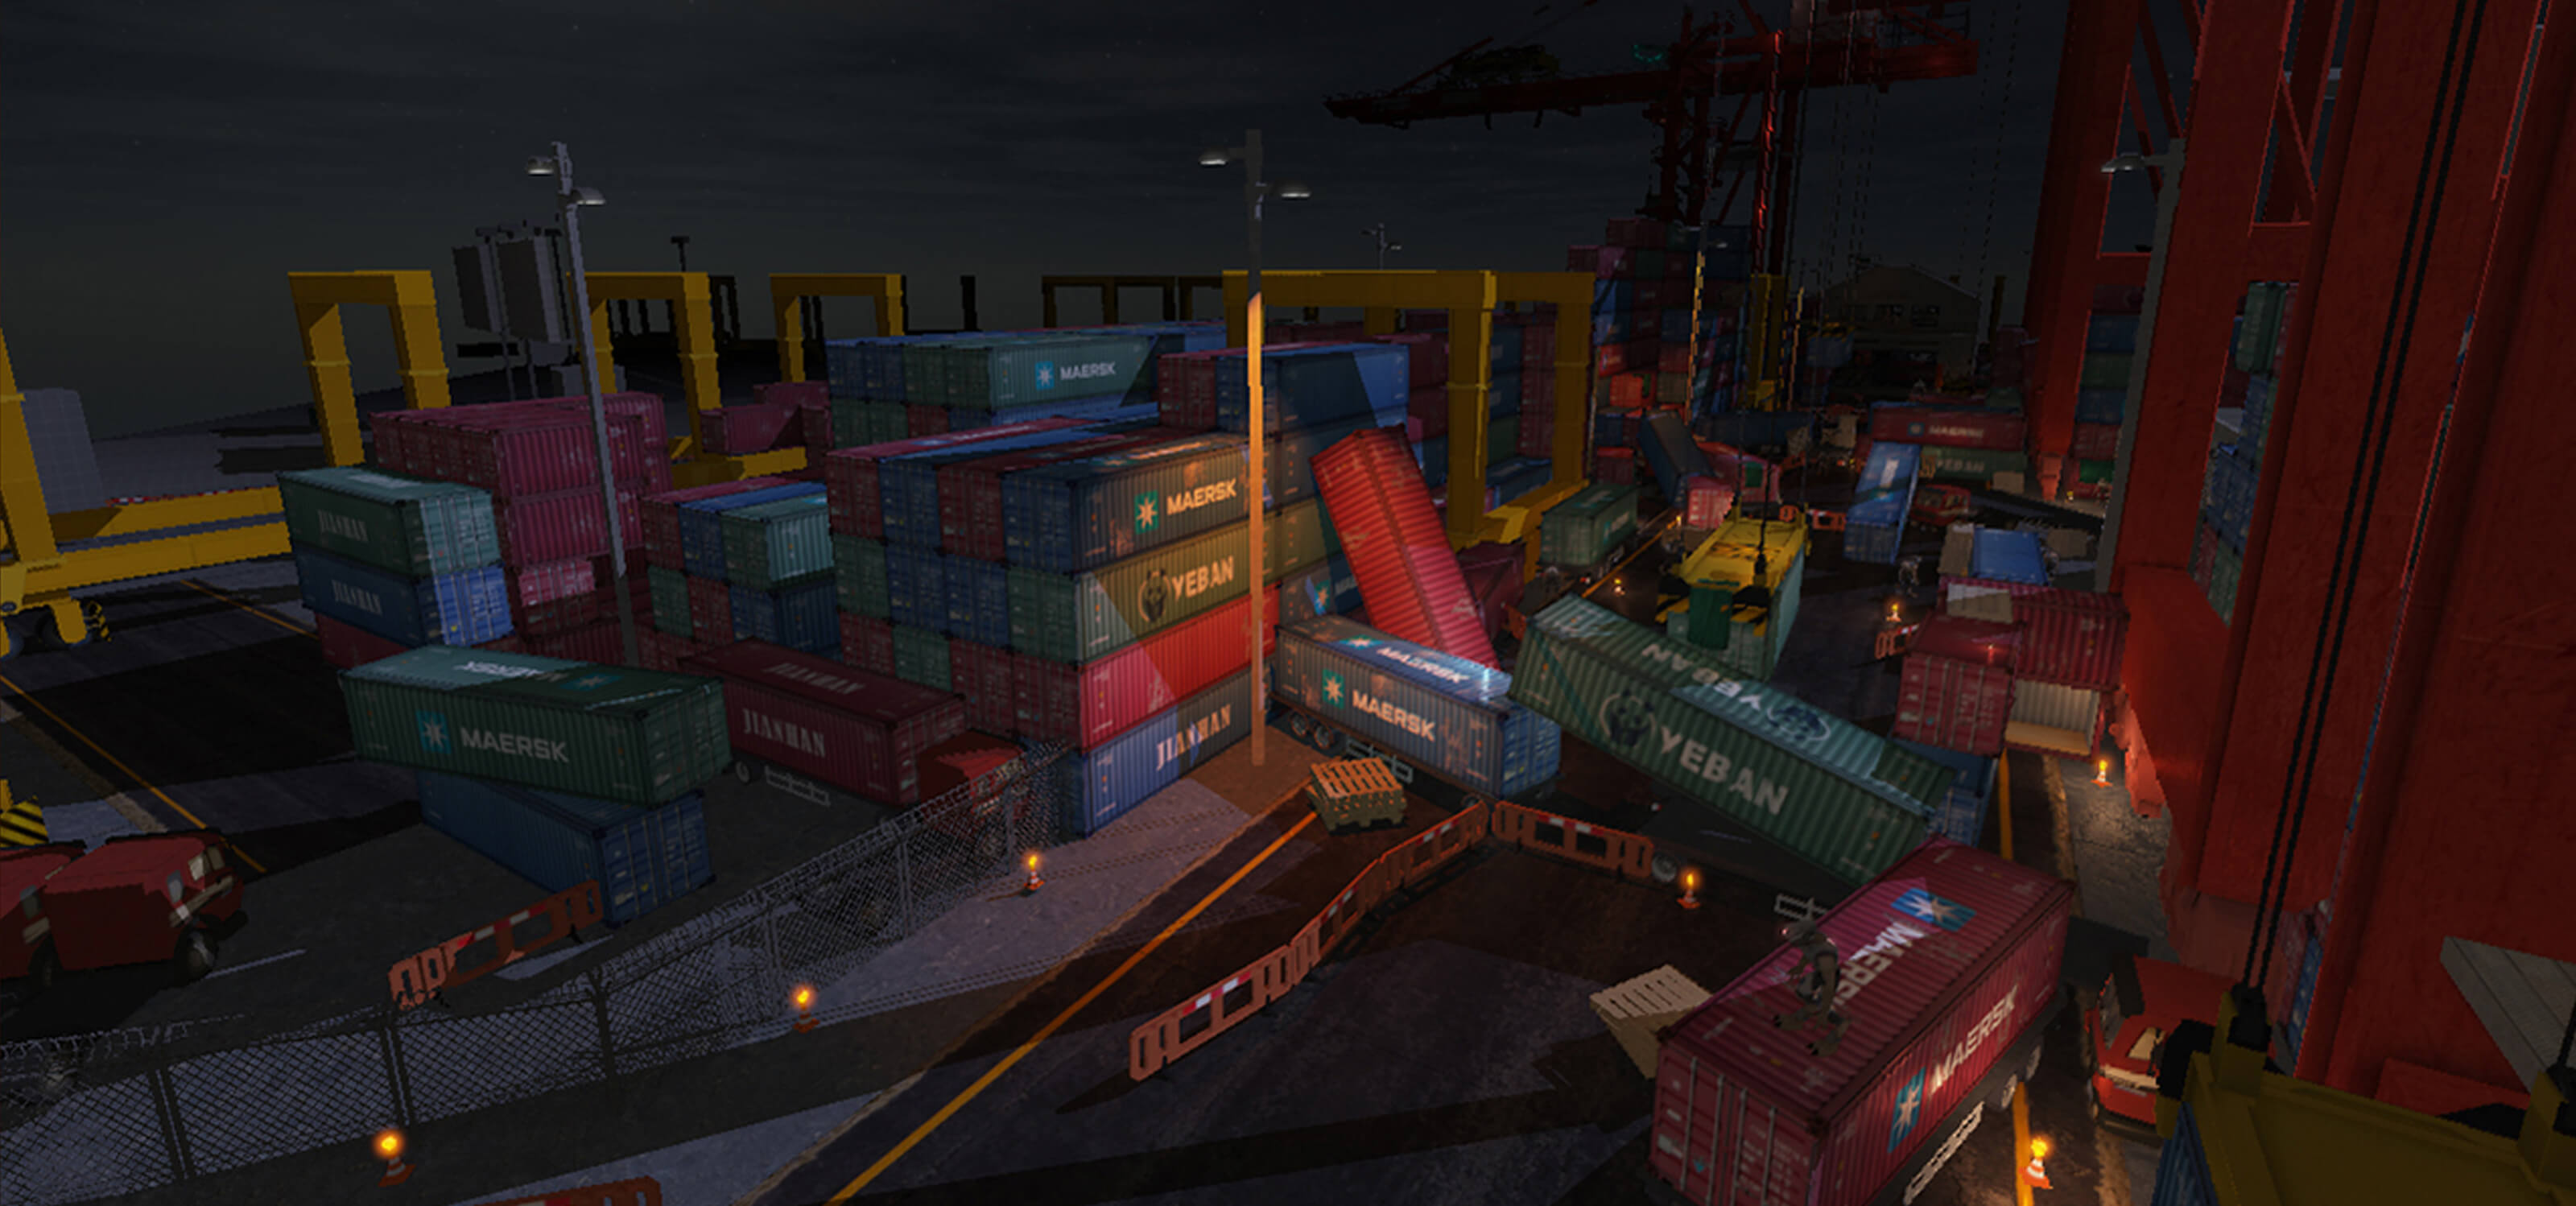 Screenshot of game at a dockyard at night with several overturned shipping containers